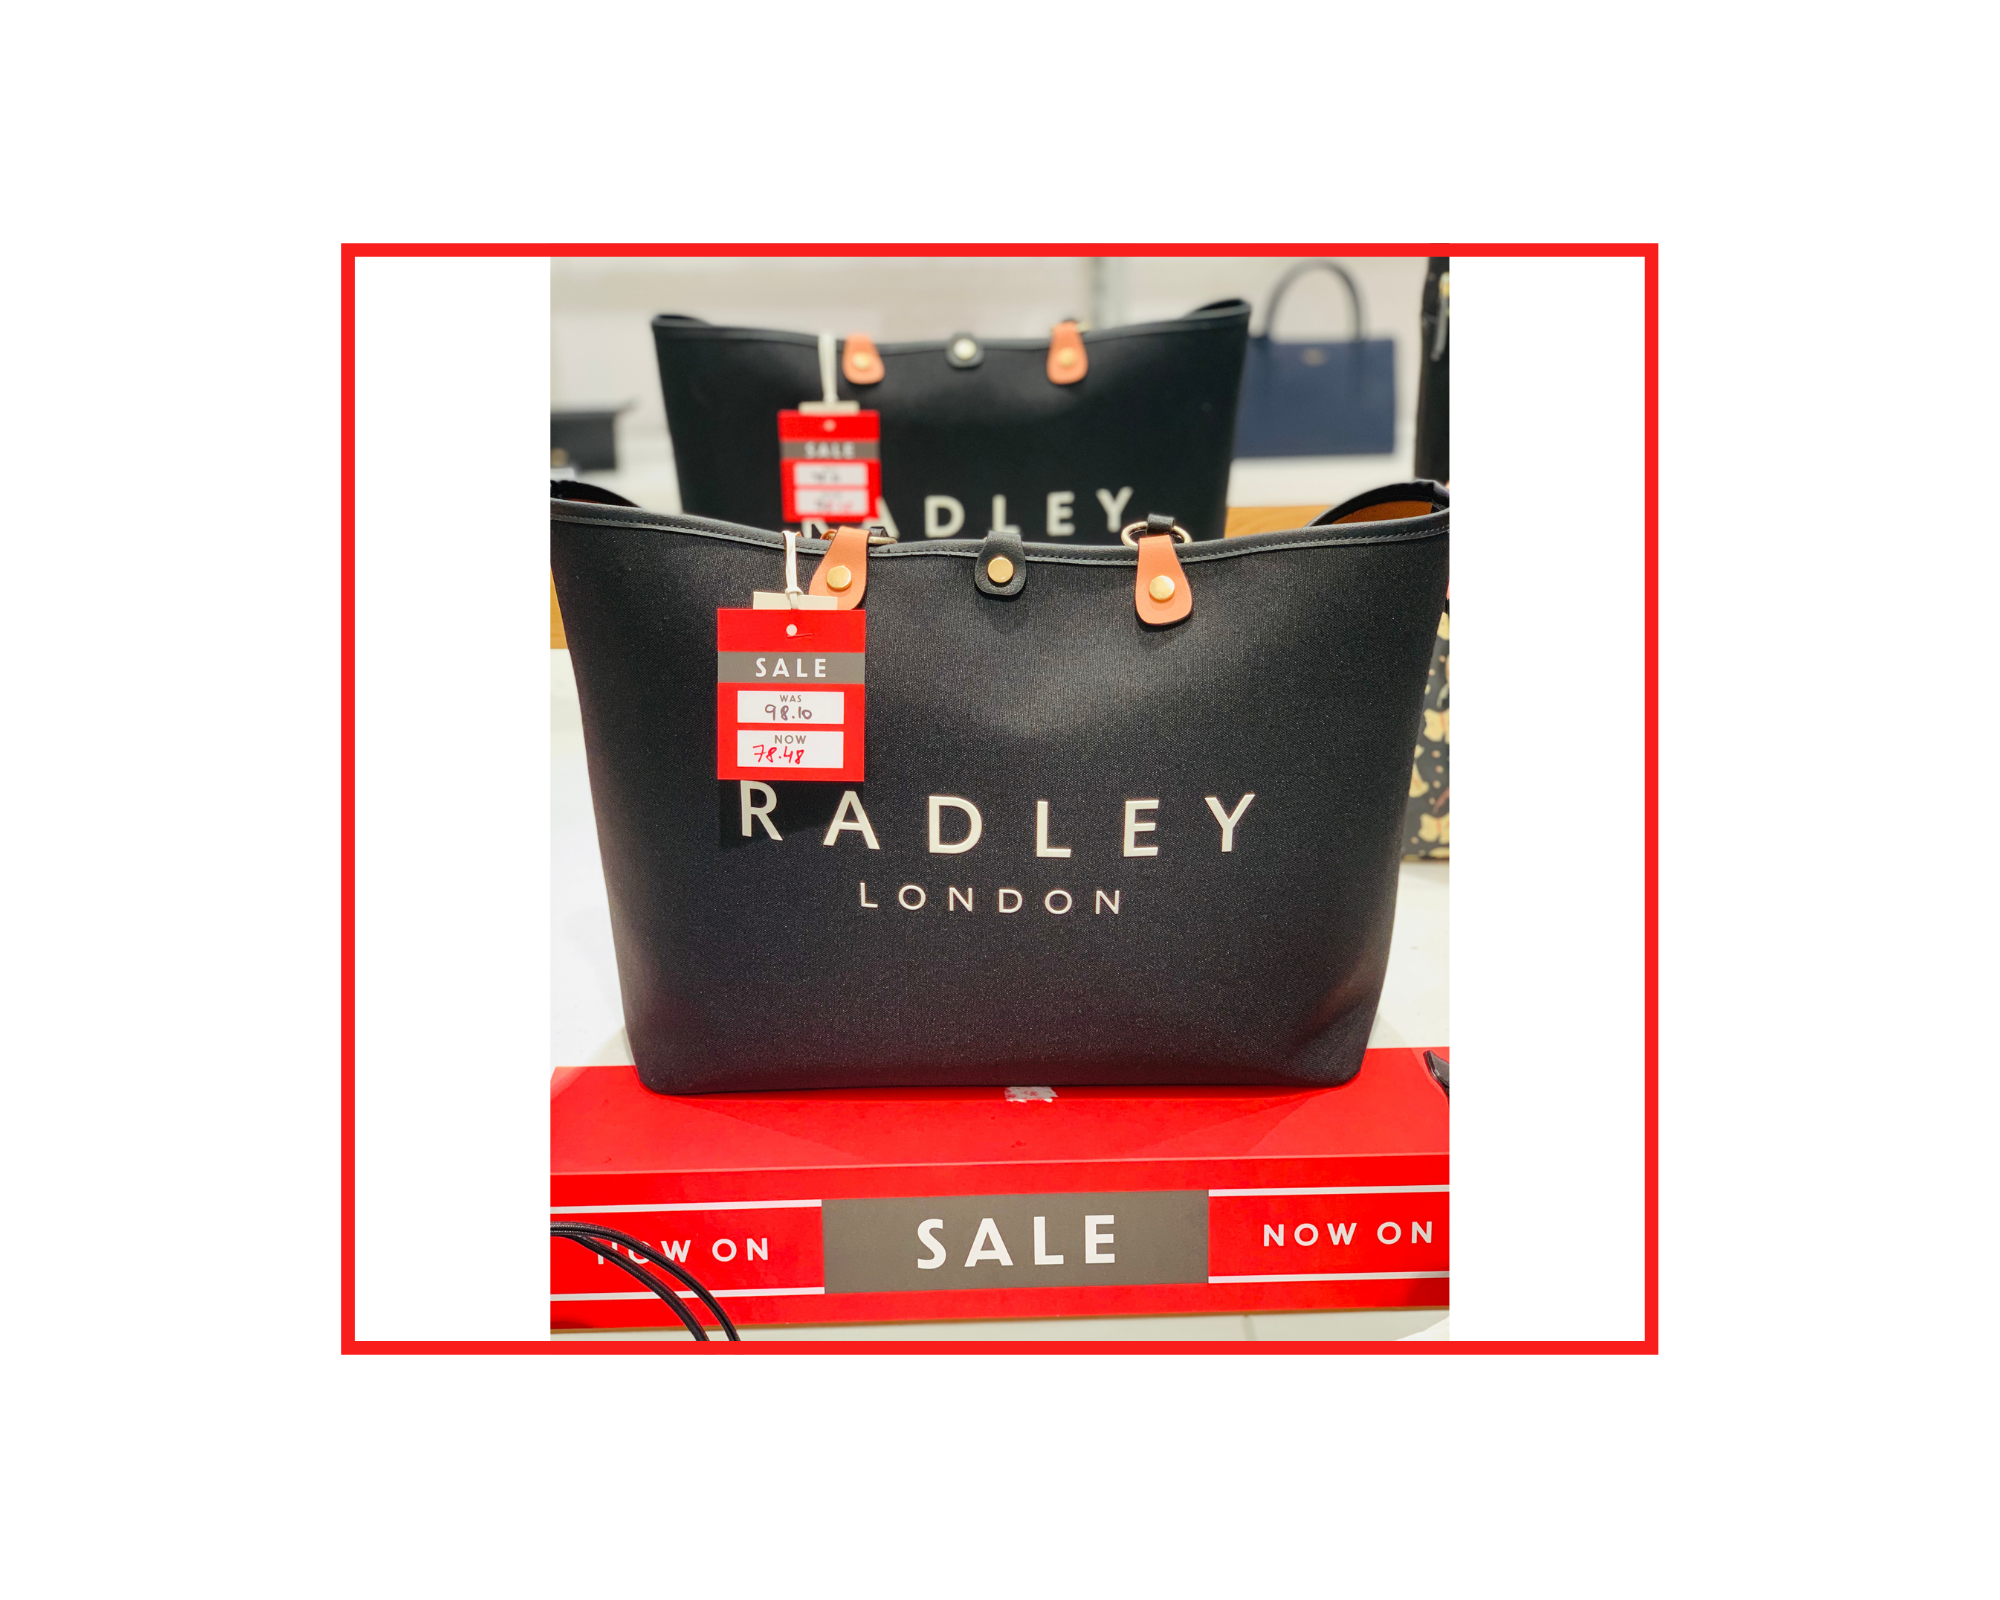 Radley  Addison Gardens Handbag  UK £109 | JSY £98.10 | NOW £78.48